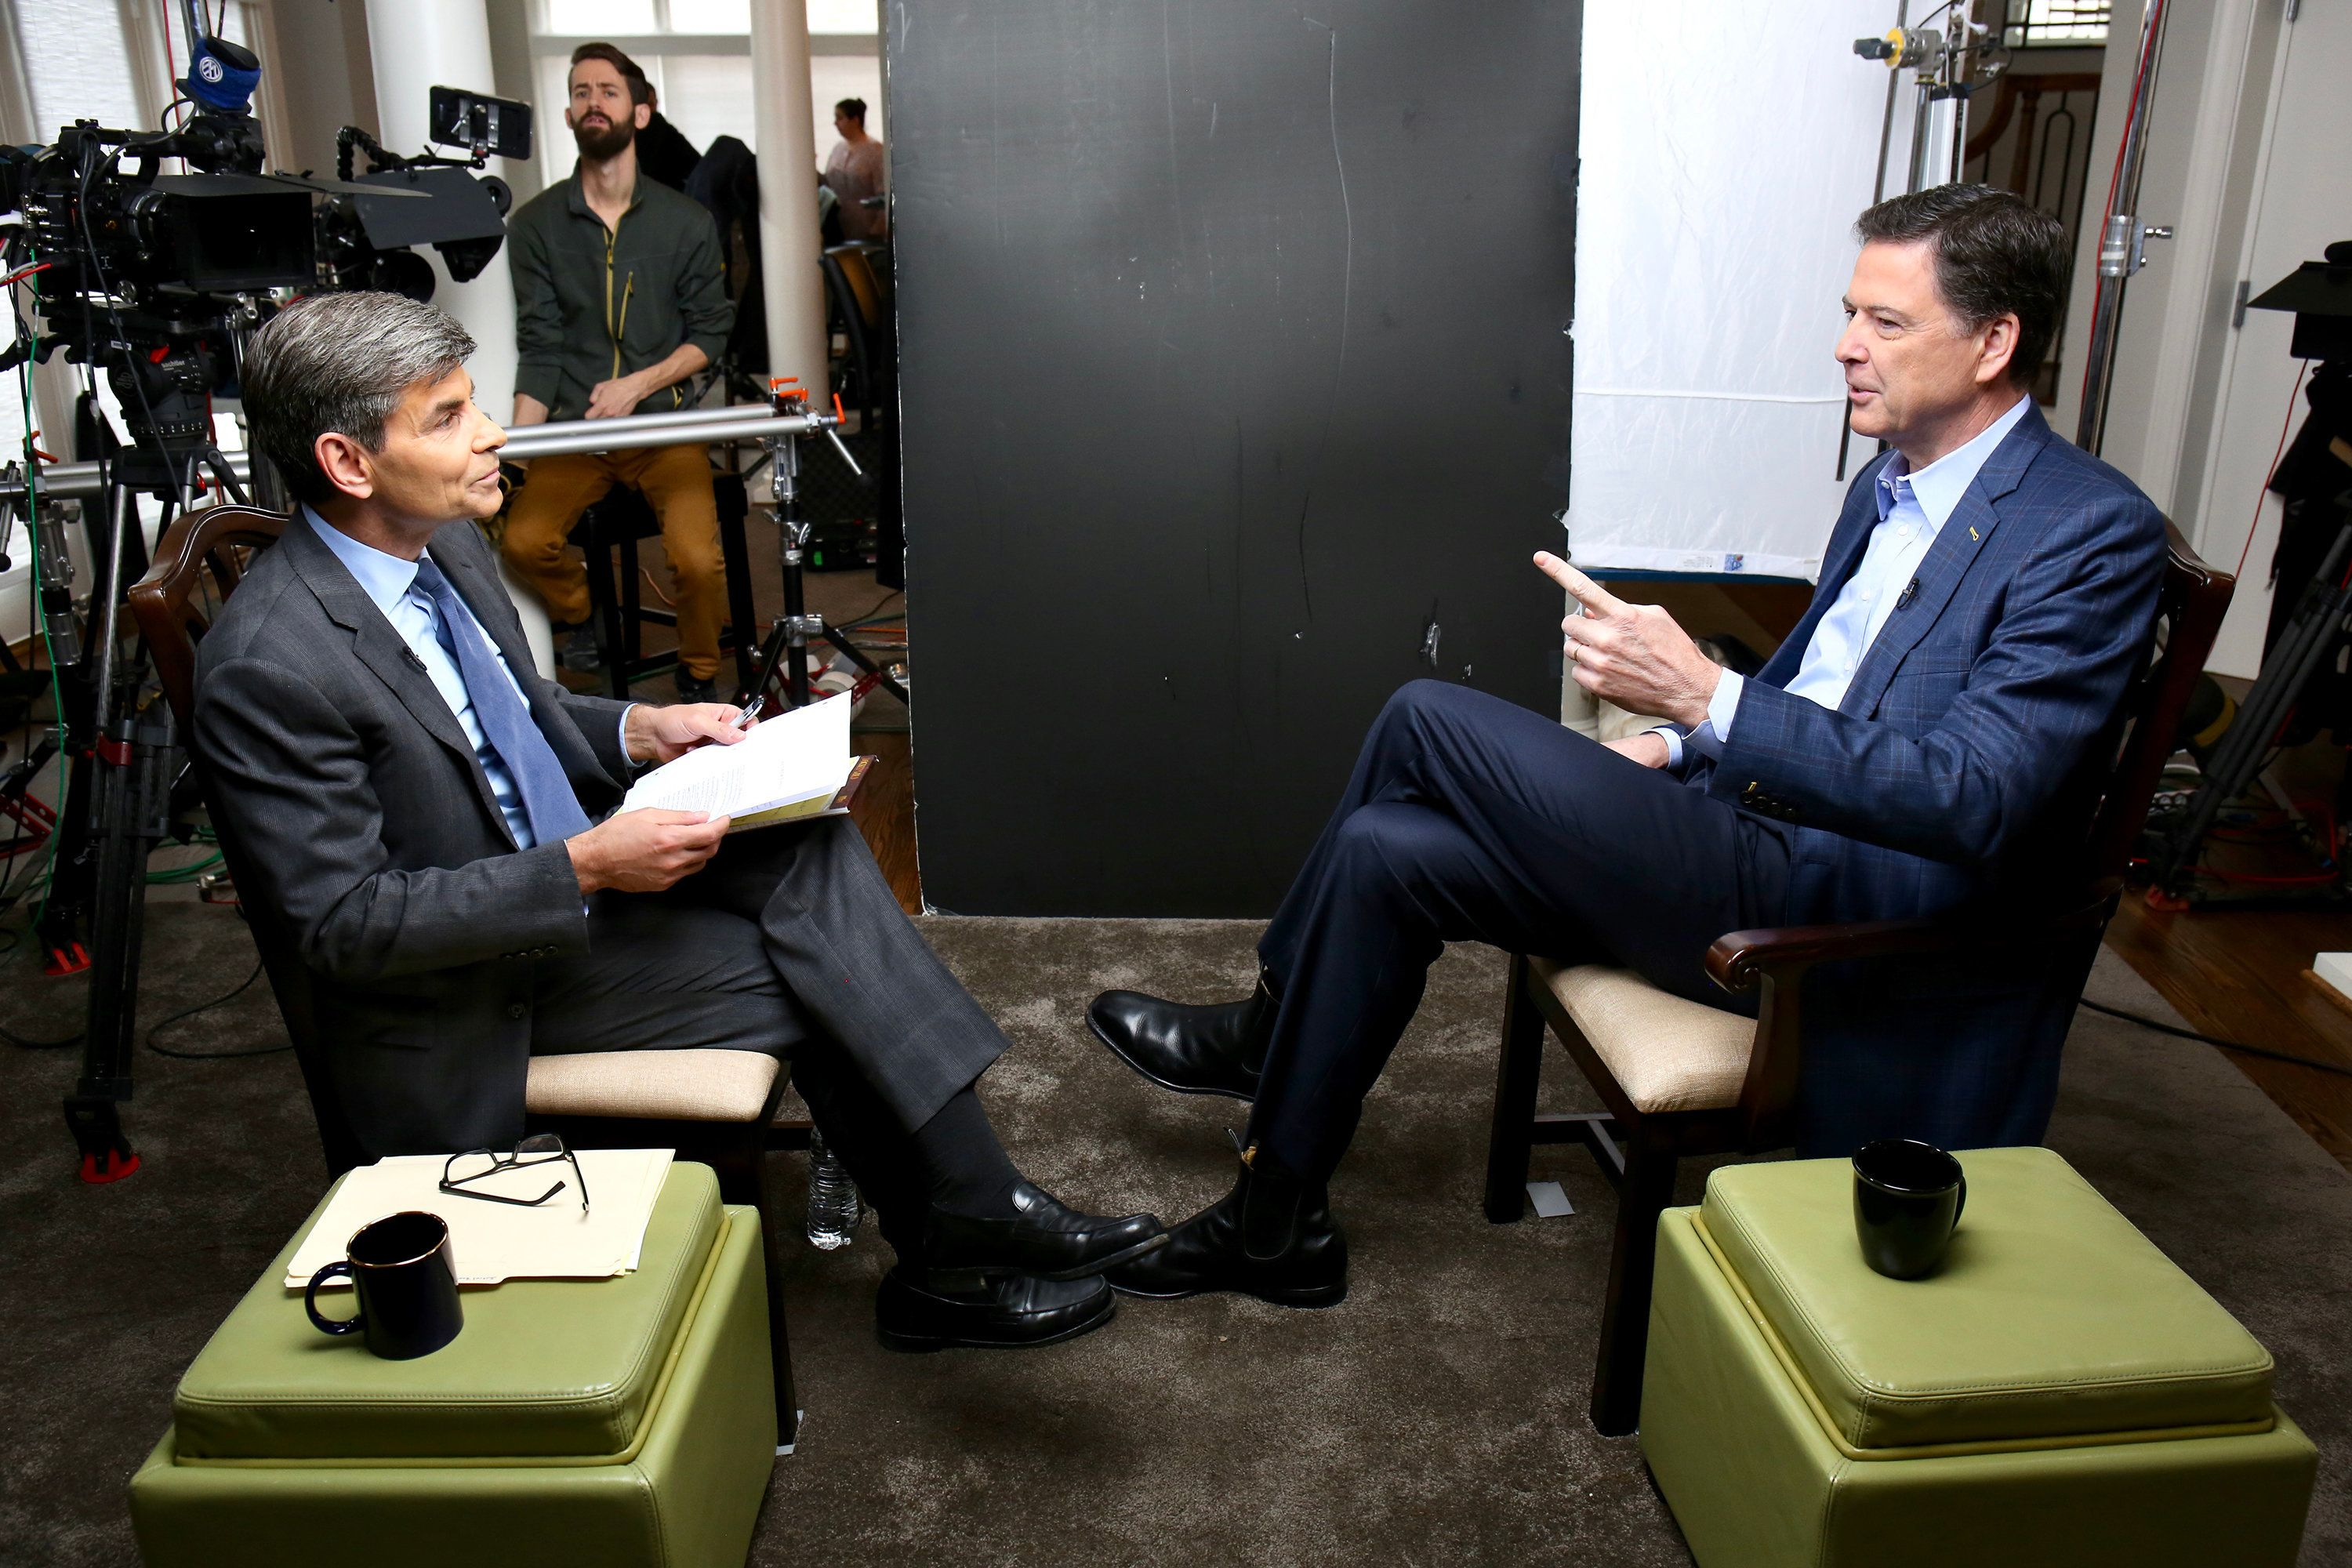 Why Comey's ABC News interview was a ratings disaster